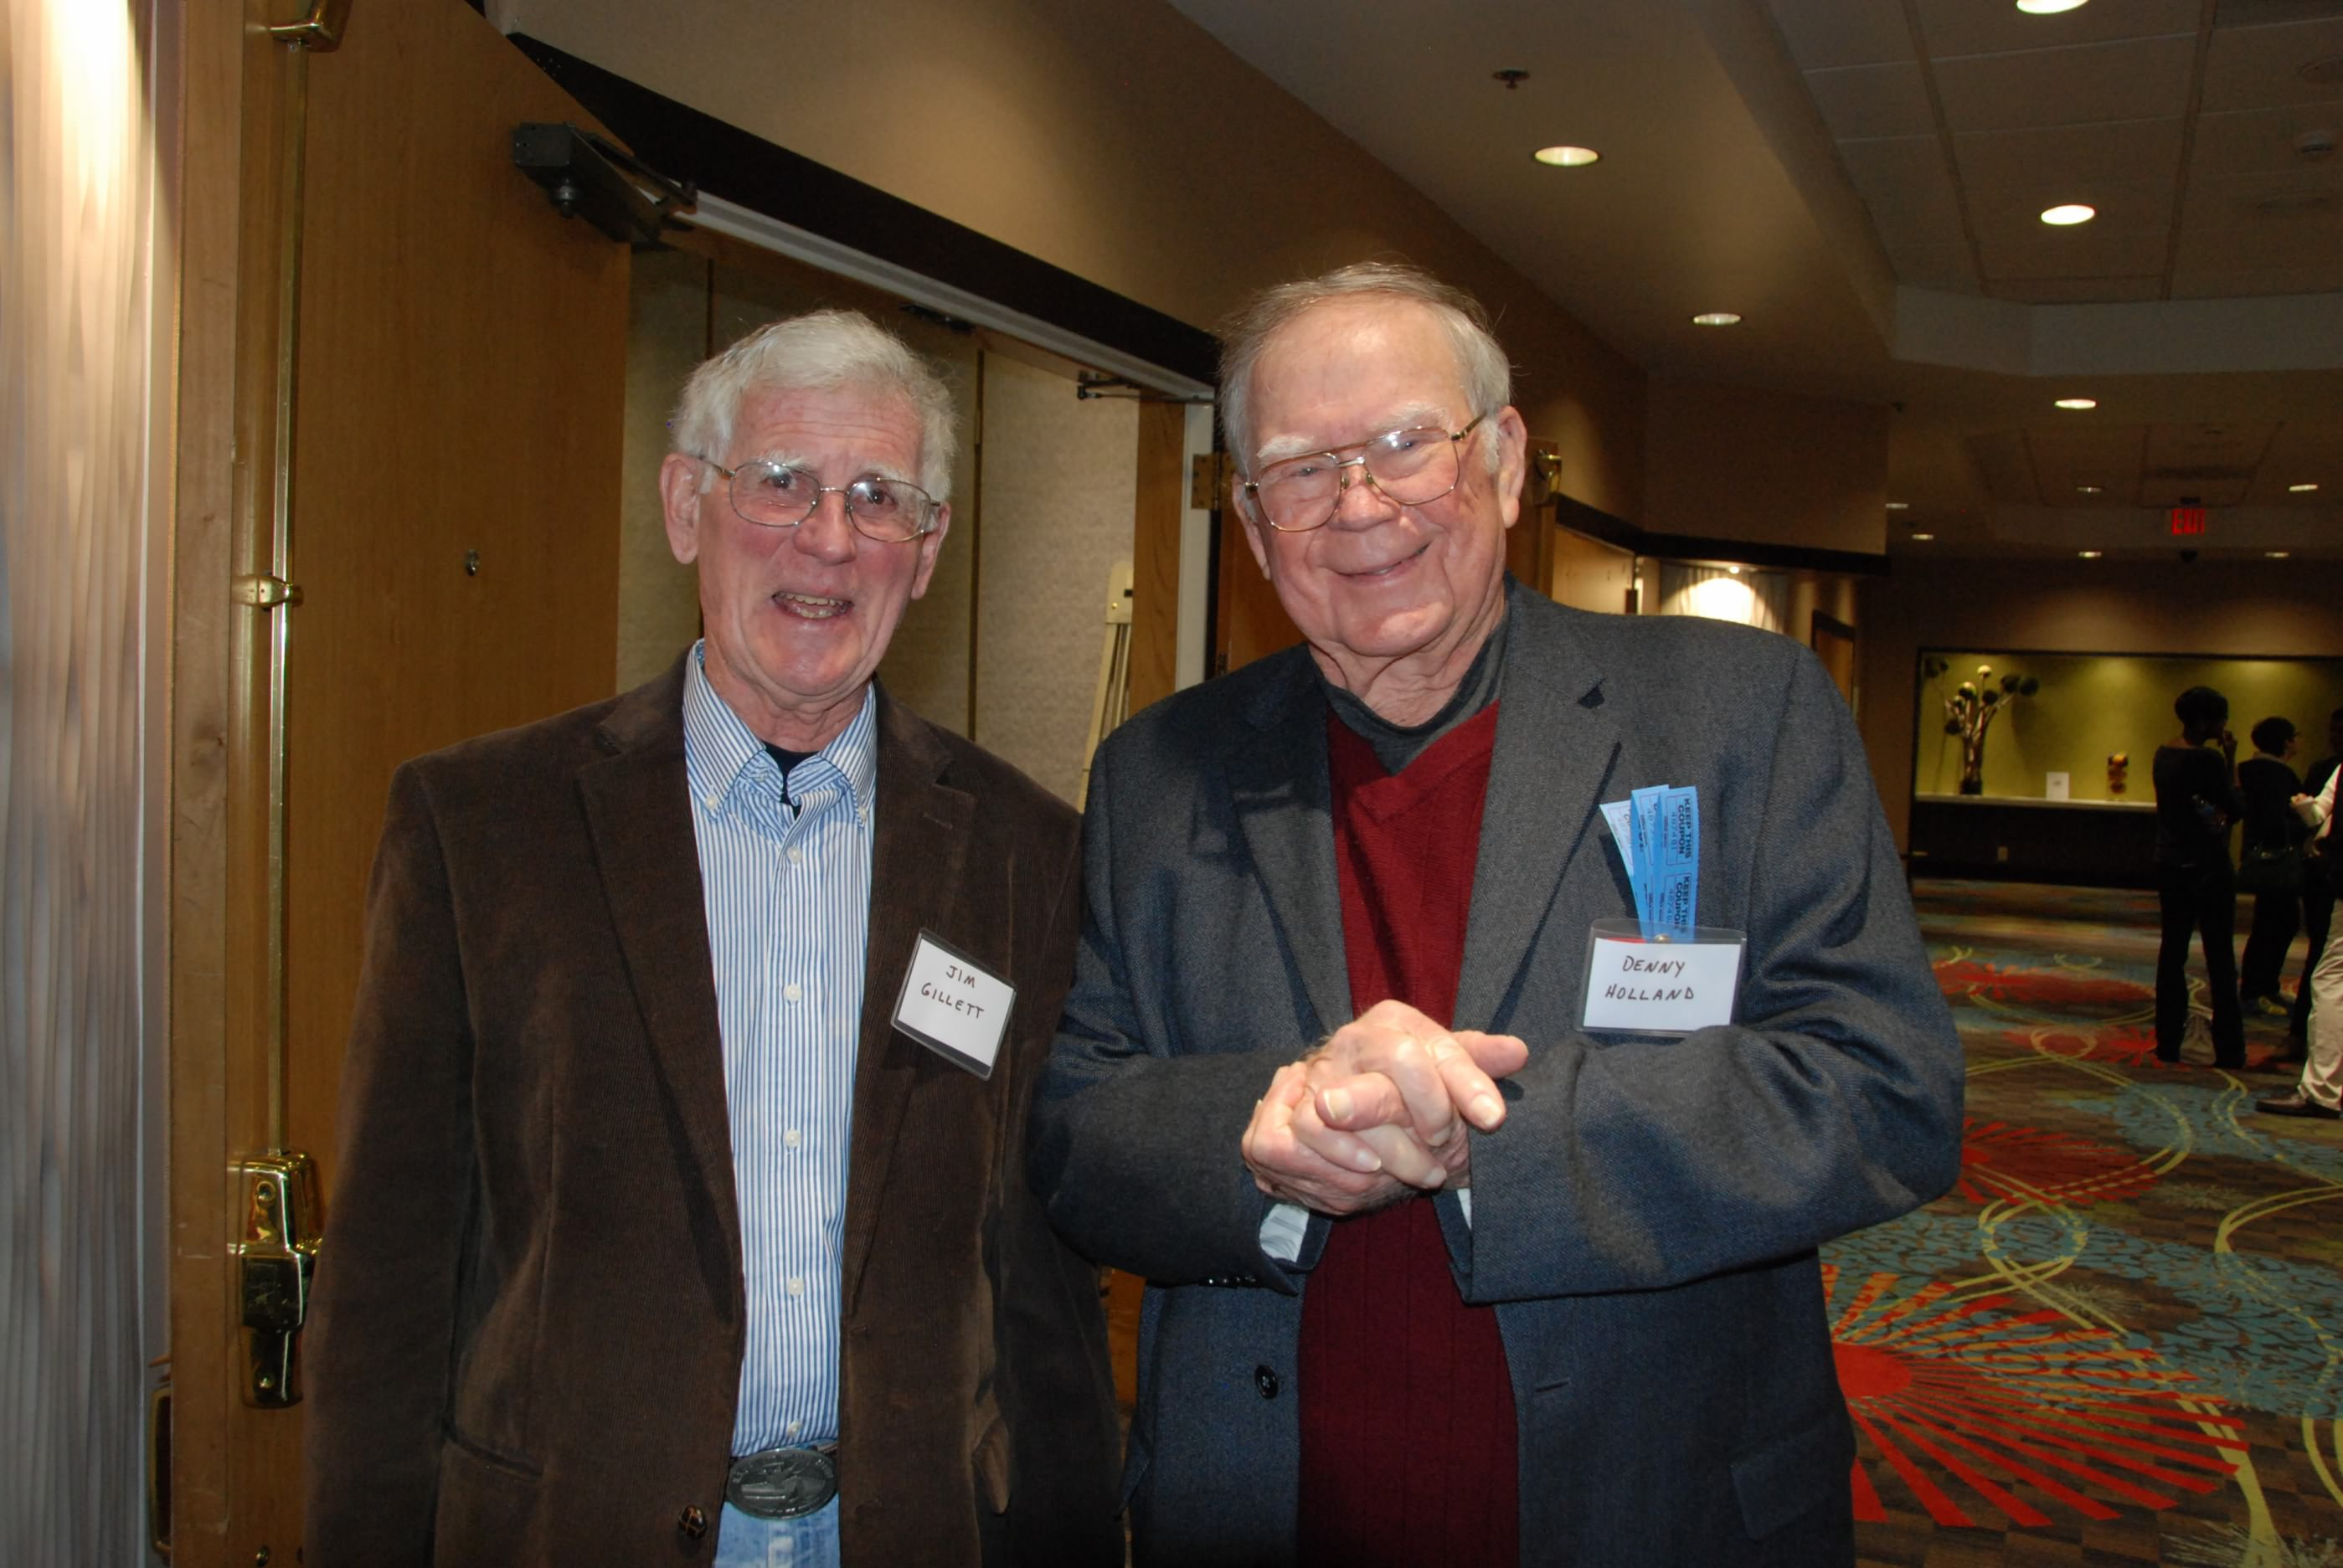 Jim Gillette and Denny Holland